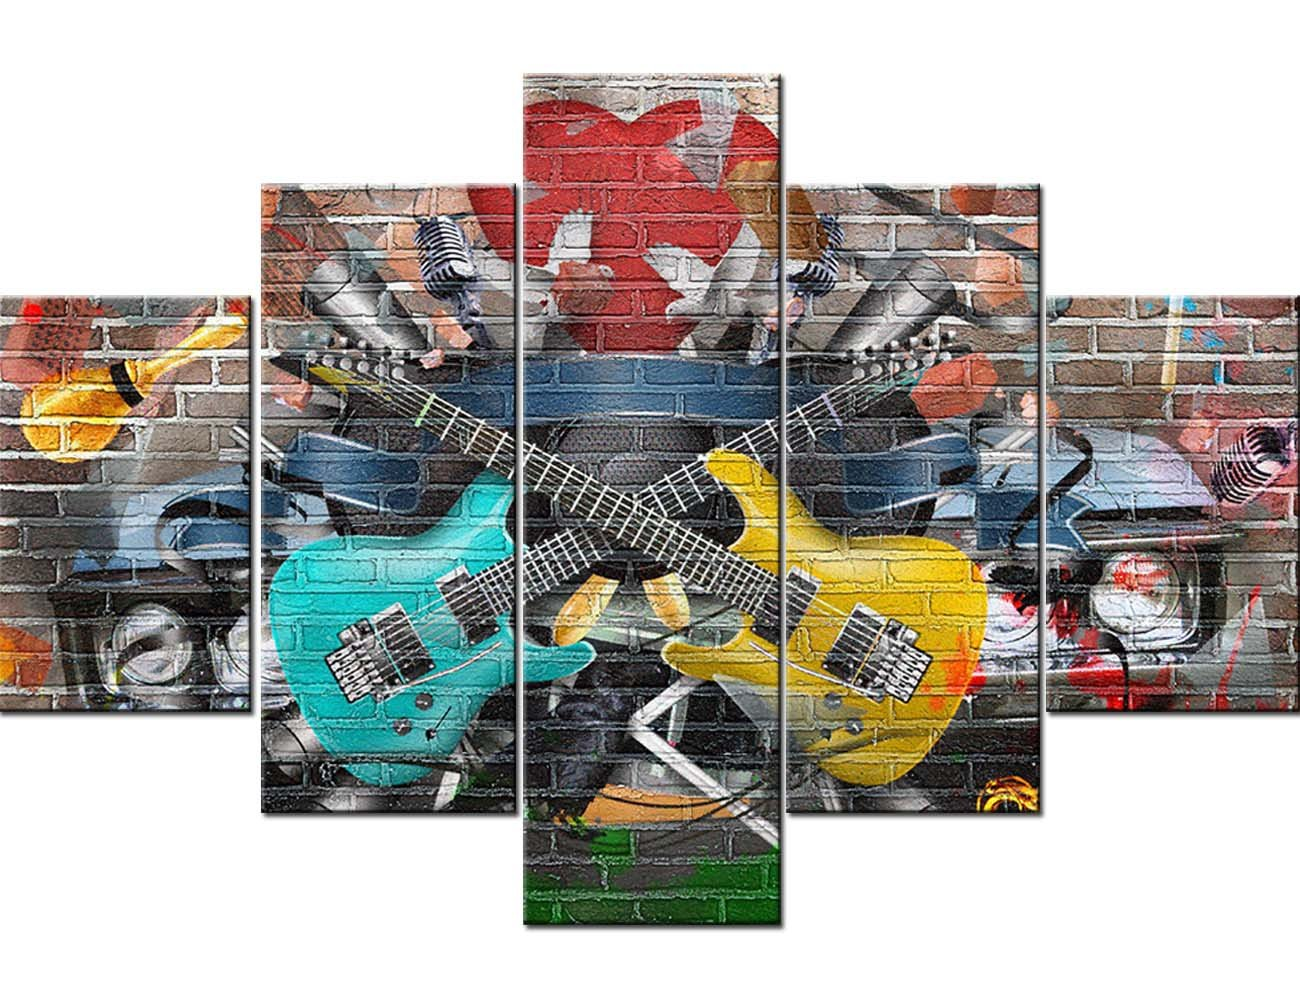 TUMOVO Graffiti Paintings Music Collage Pictures 5 Panel Canvas Wall Art Home Decor for Living Room Bedroom Office Modern Artwork Posters and Prints Framed Gallery-Wrapped Ready to Hang(60''Wx40''H) by TUMOVO